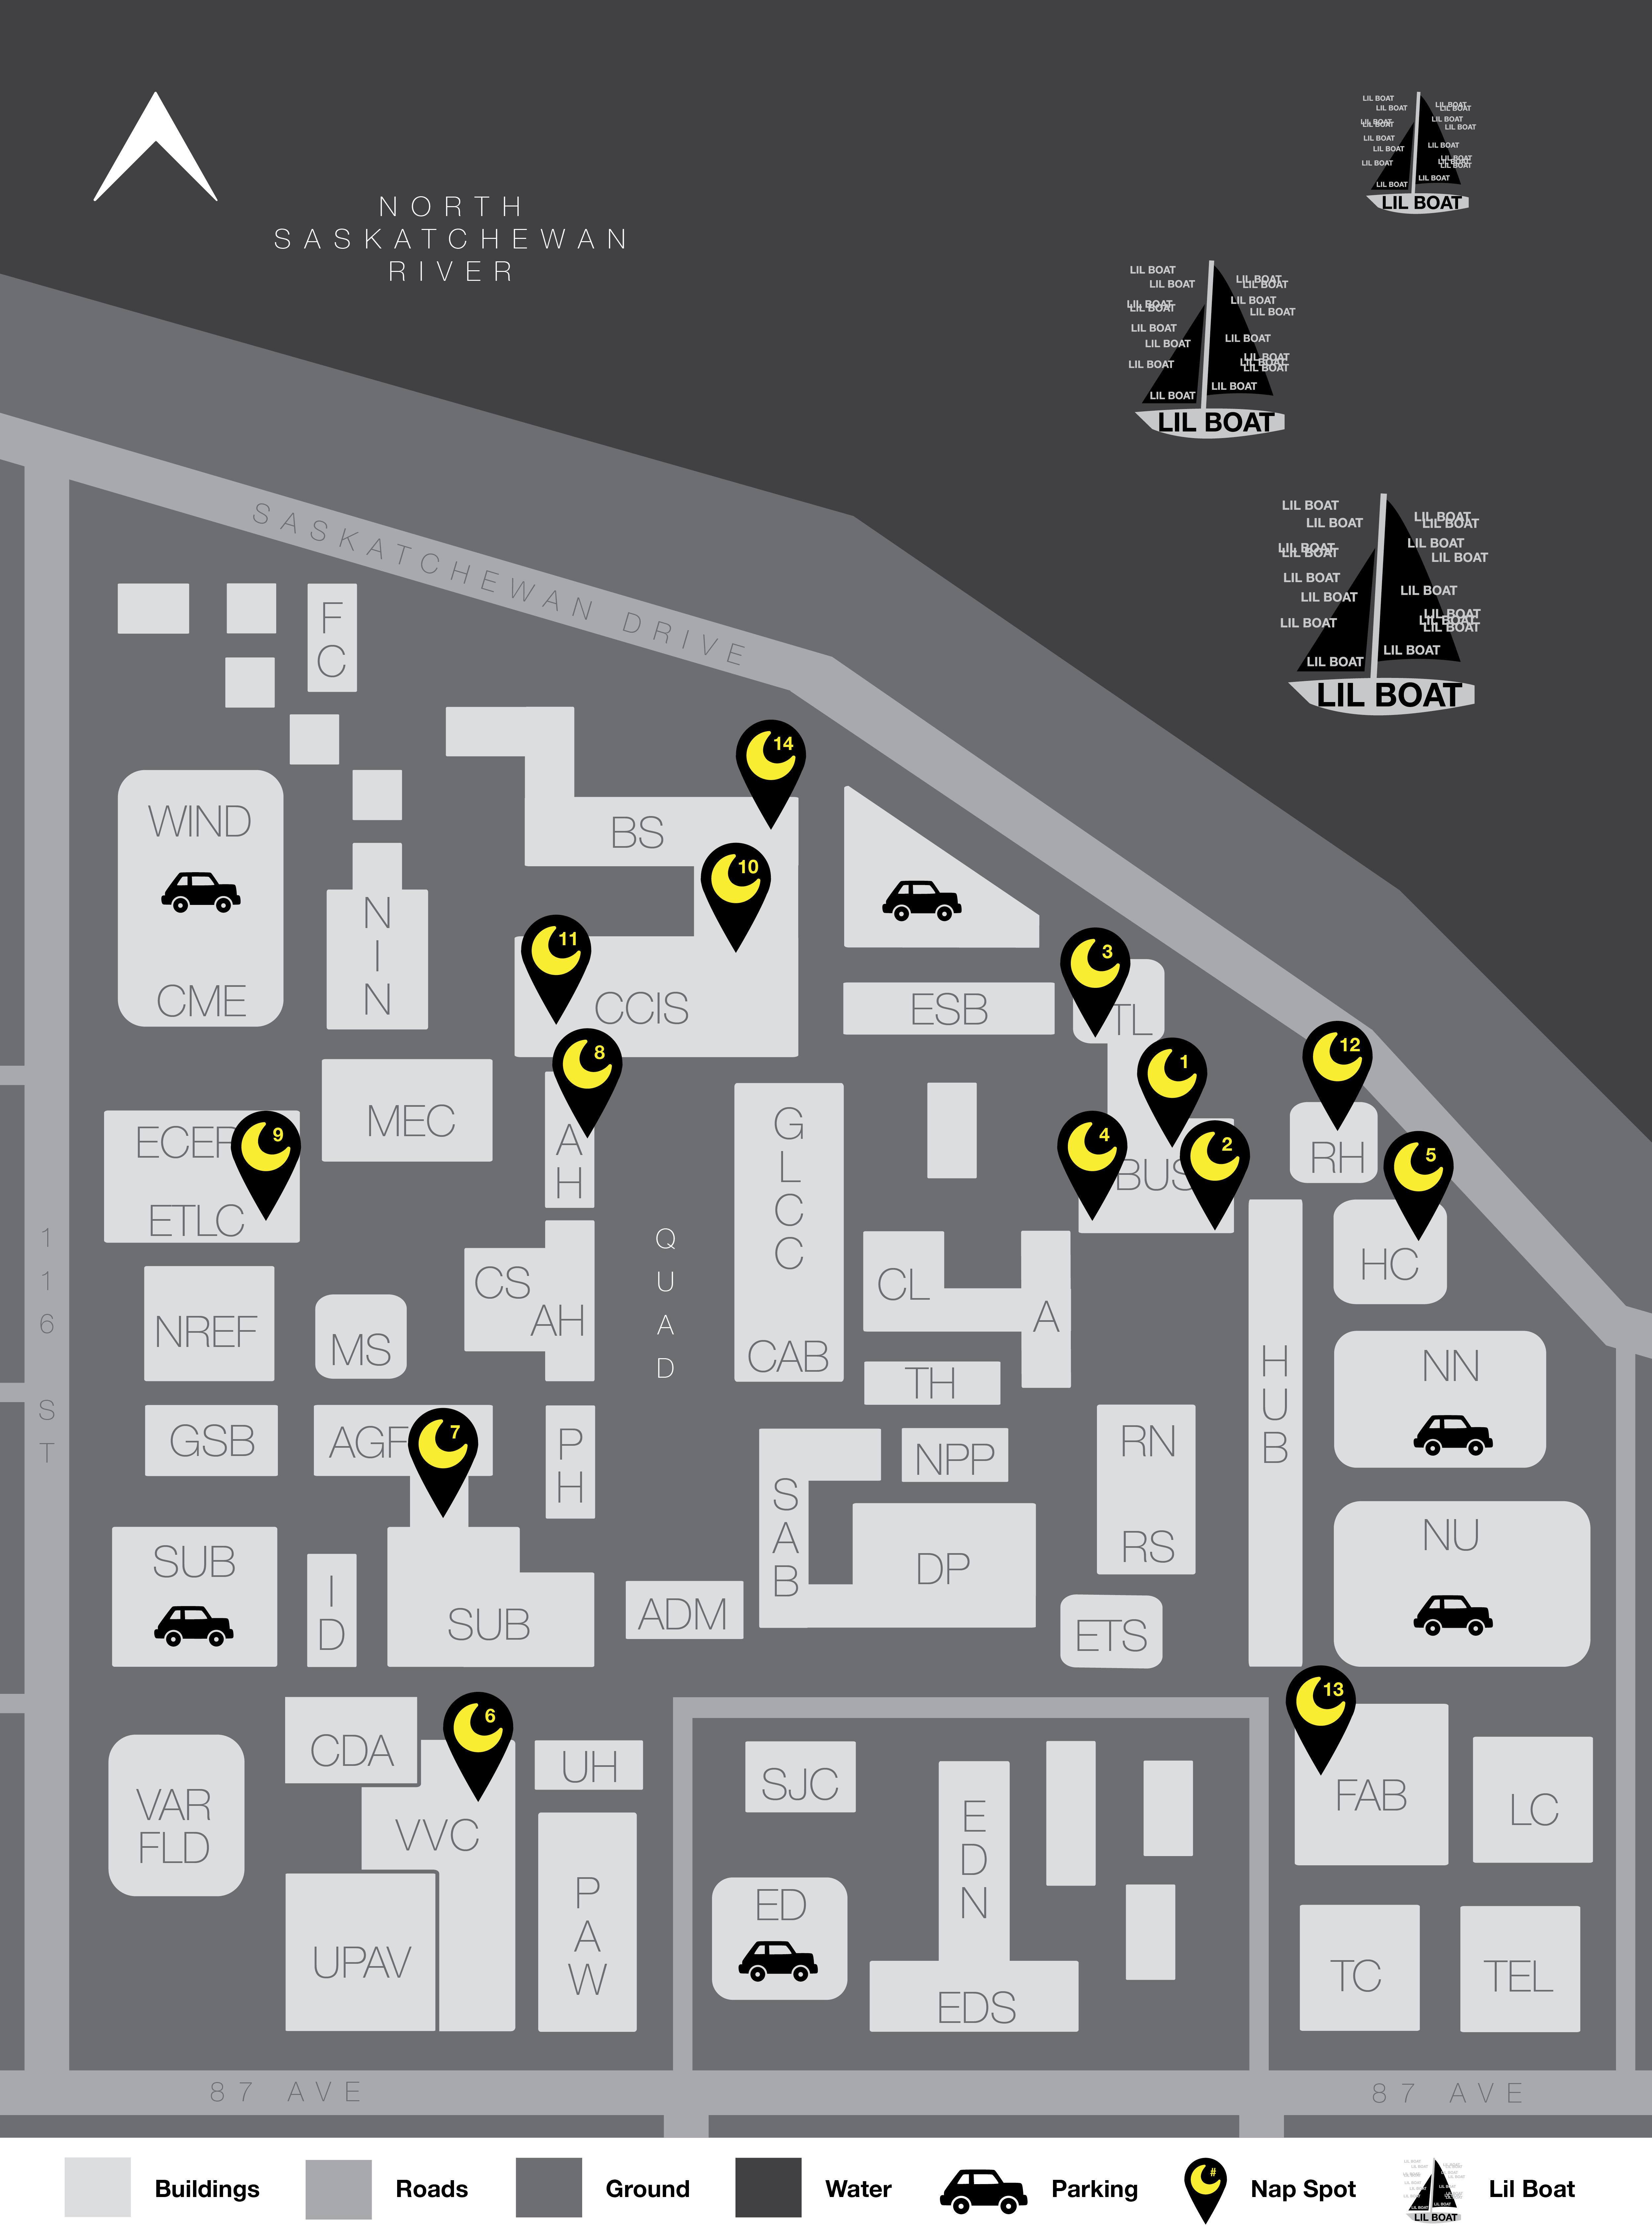 North Campus Nap Map: for the sleep deprived student needing to rest their noggin